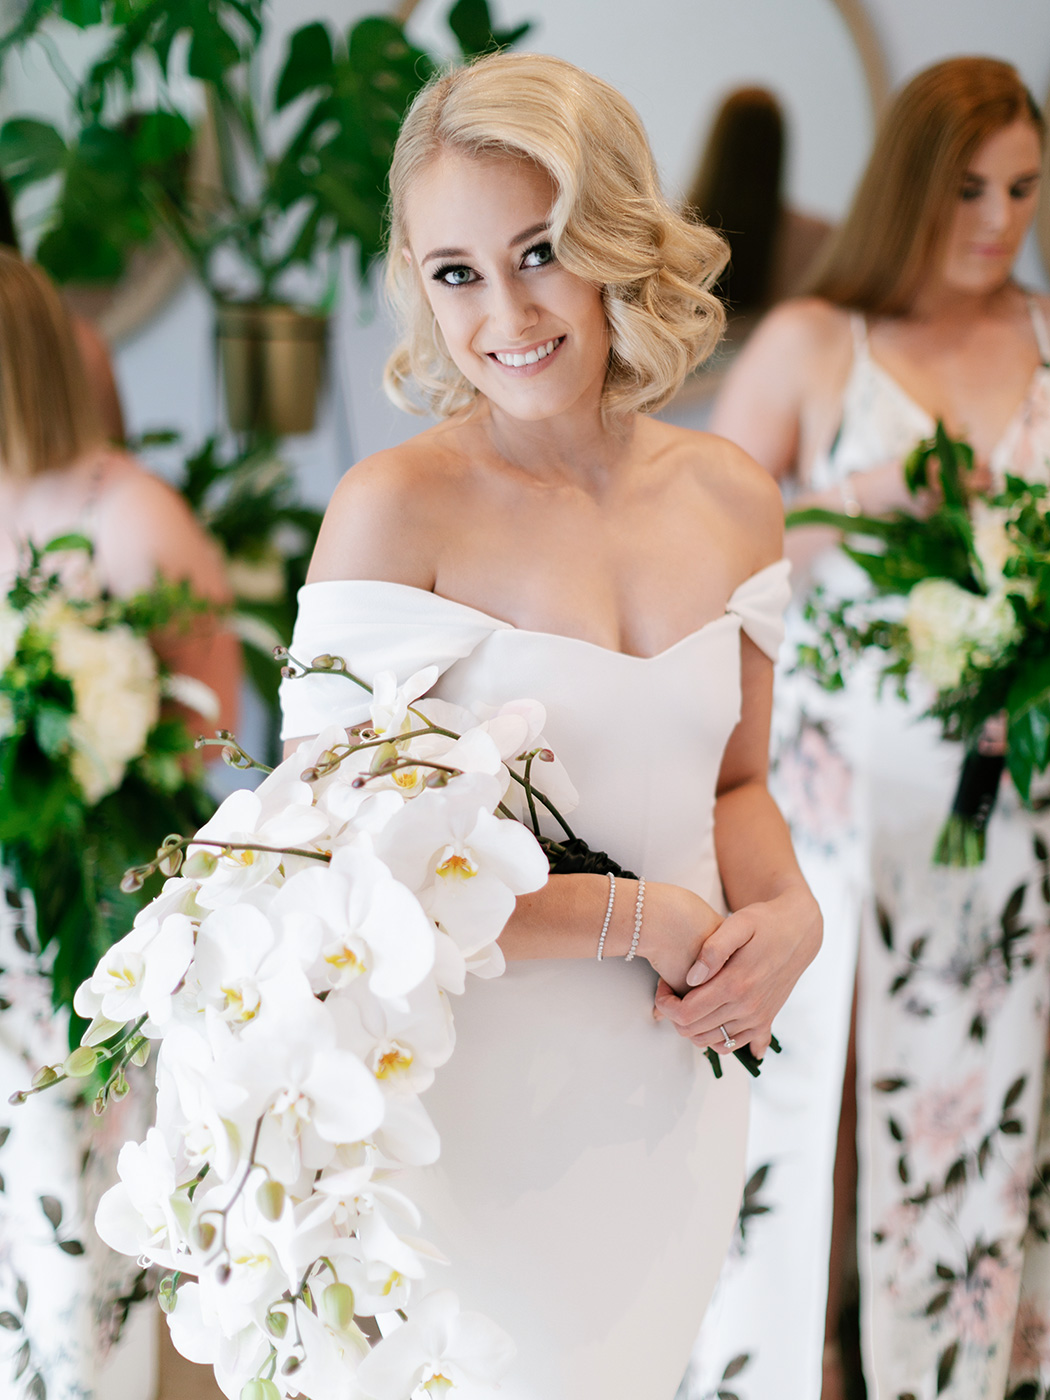 Bride Bouquet | Rensche Mari Photography